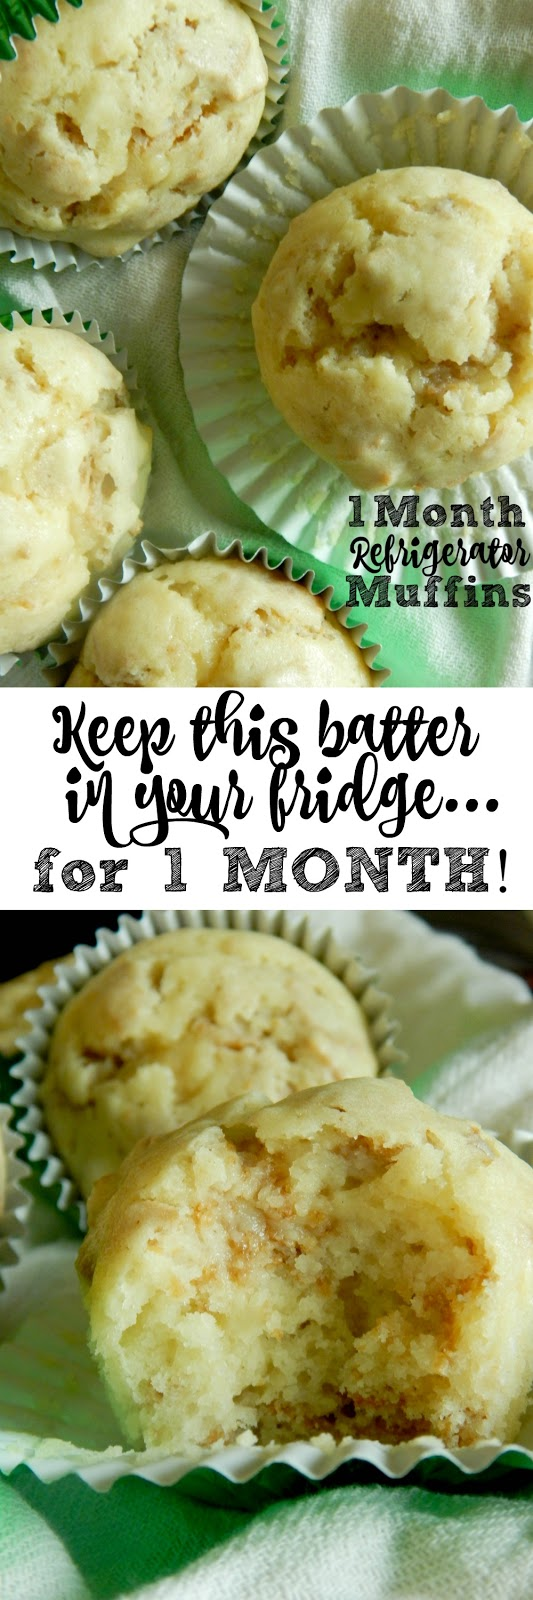 1 Month Refrigerator Muffins...this batter can stay in the fridge for up to one month!  Tangy, sweet and so incredibly soft, the best muffin I've made to date! (sweetandsavoryfood.com)